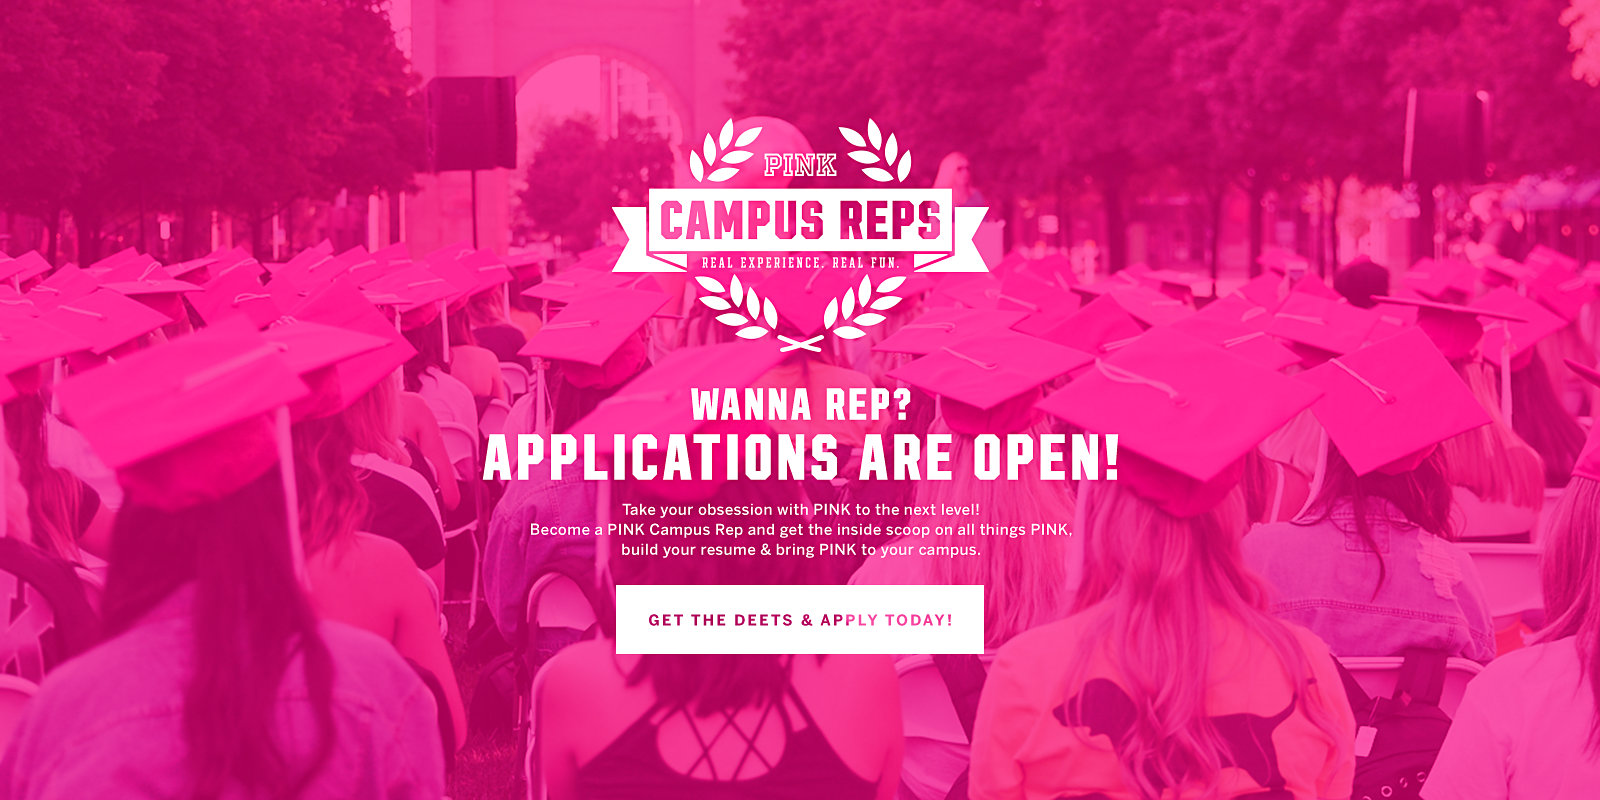 b5fd79c43aa PINK Campus Reps. Real Experience. Real Fun. Wanna Rep  Applications Are  Open